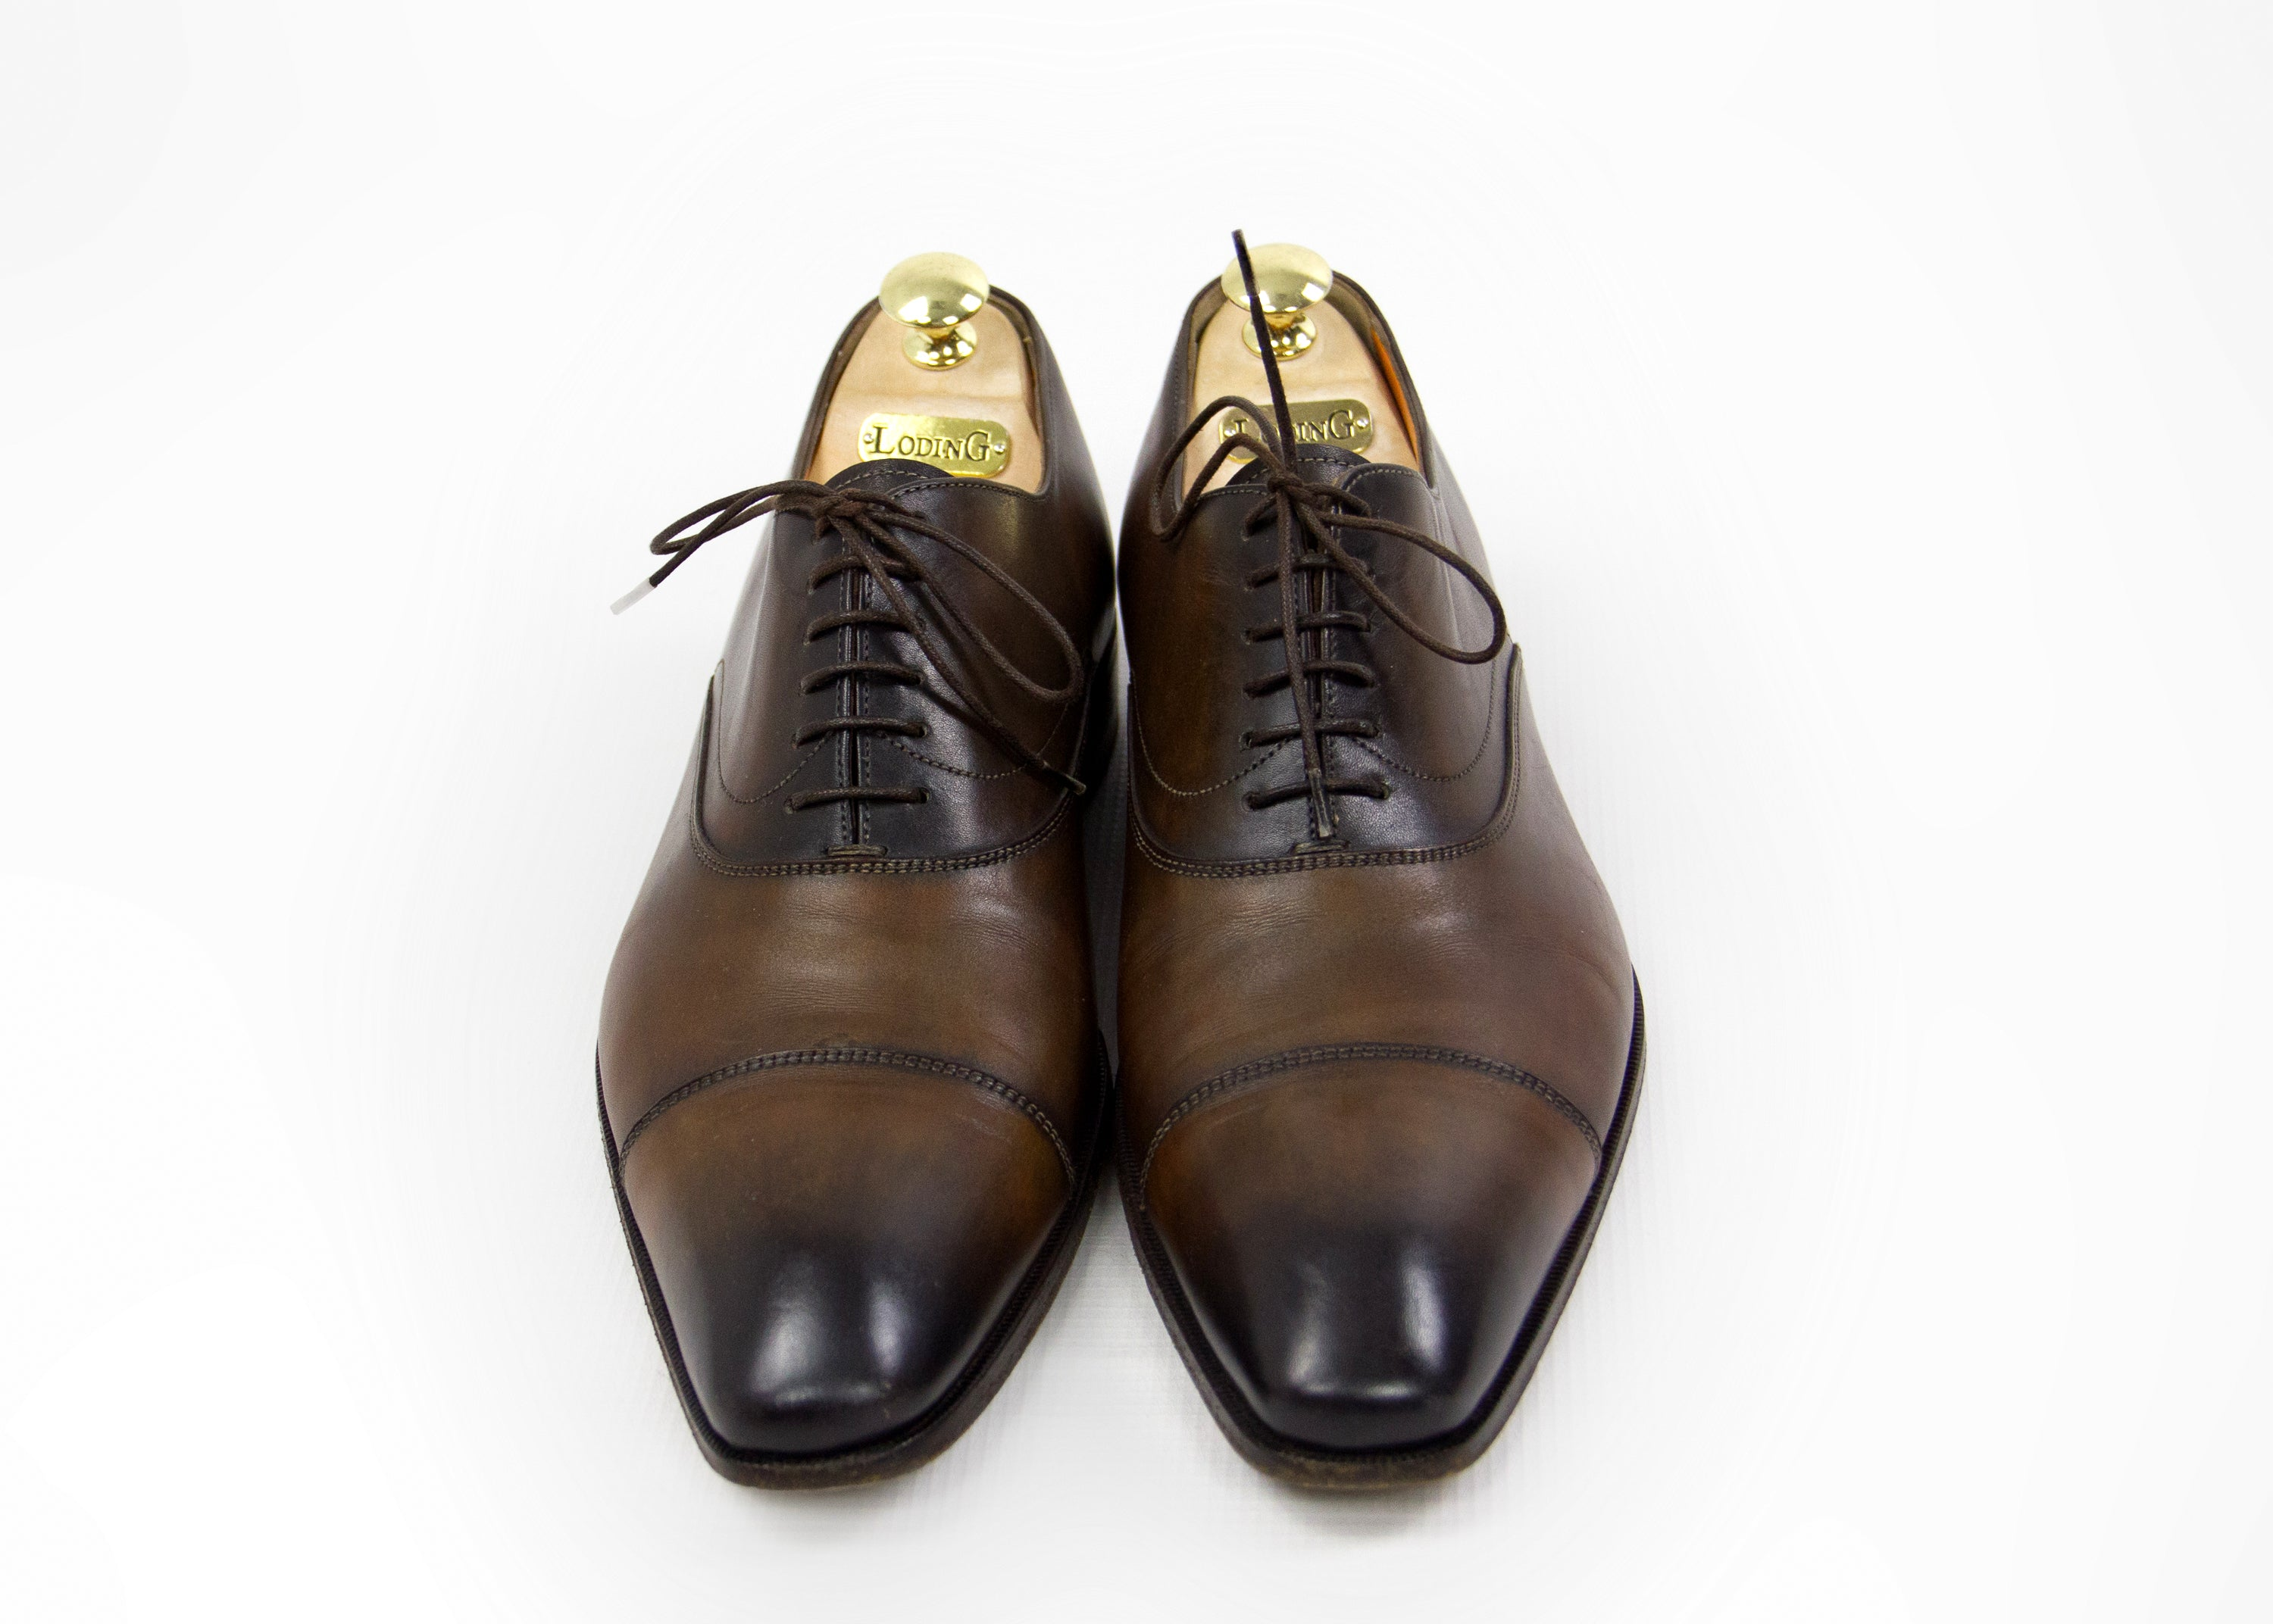 SANTONI Cap Toe Oxford Shoes USA 9.5 - secondfirst